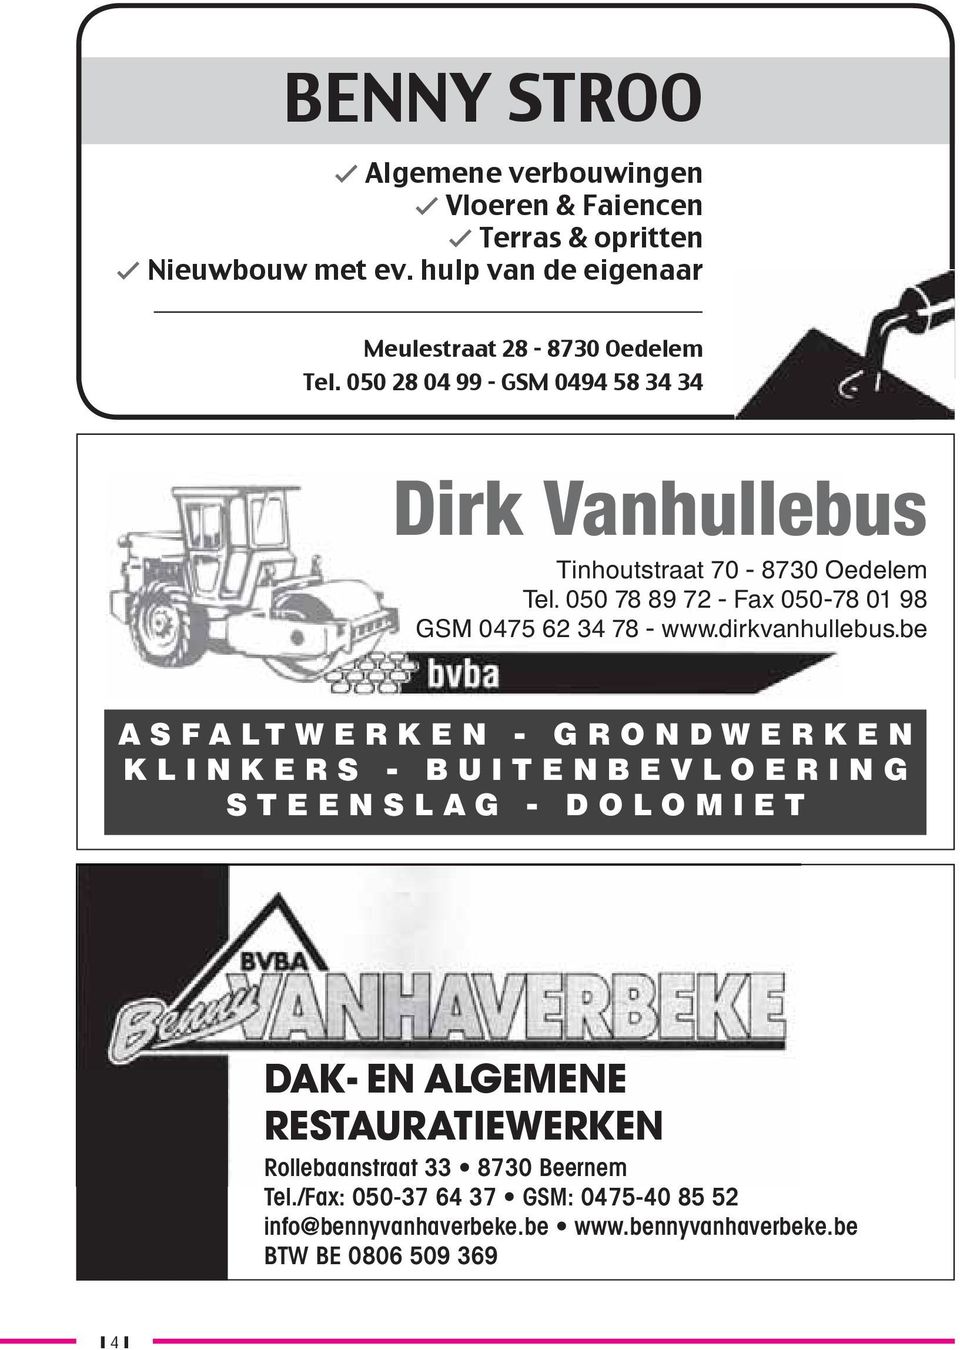 050 78 89 72 - Fax 050-78 01 98 GSM 0475 62 34 78 - www.dirkvanhullebus.